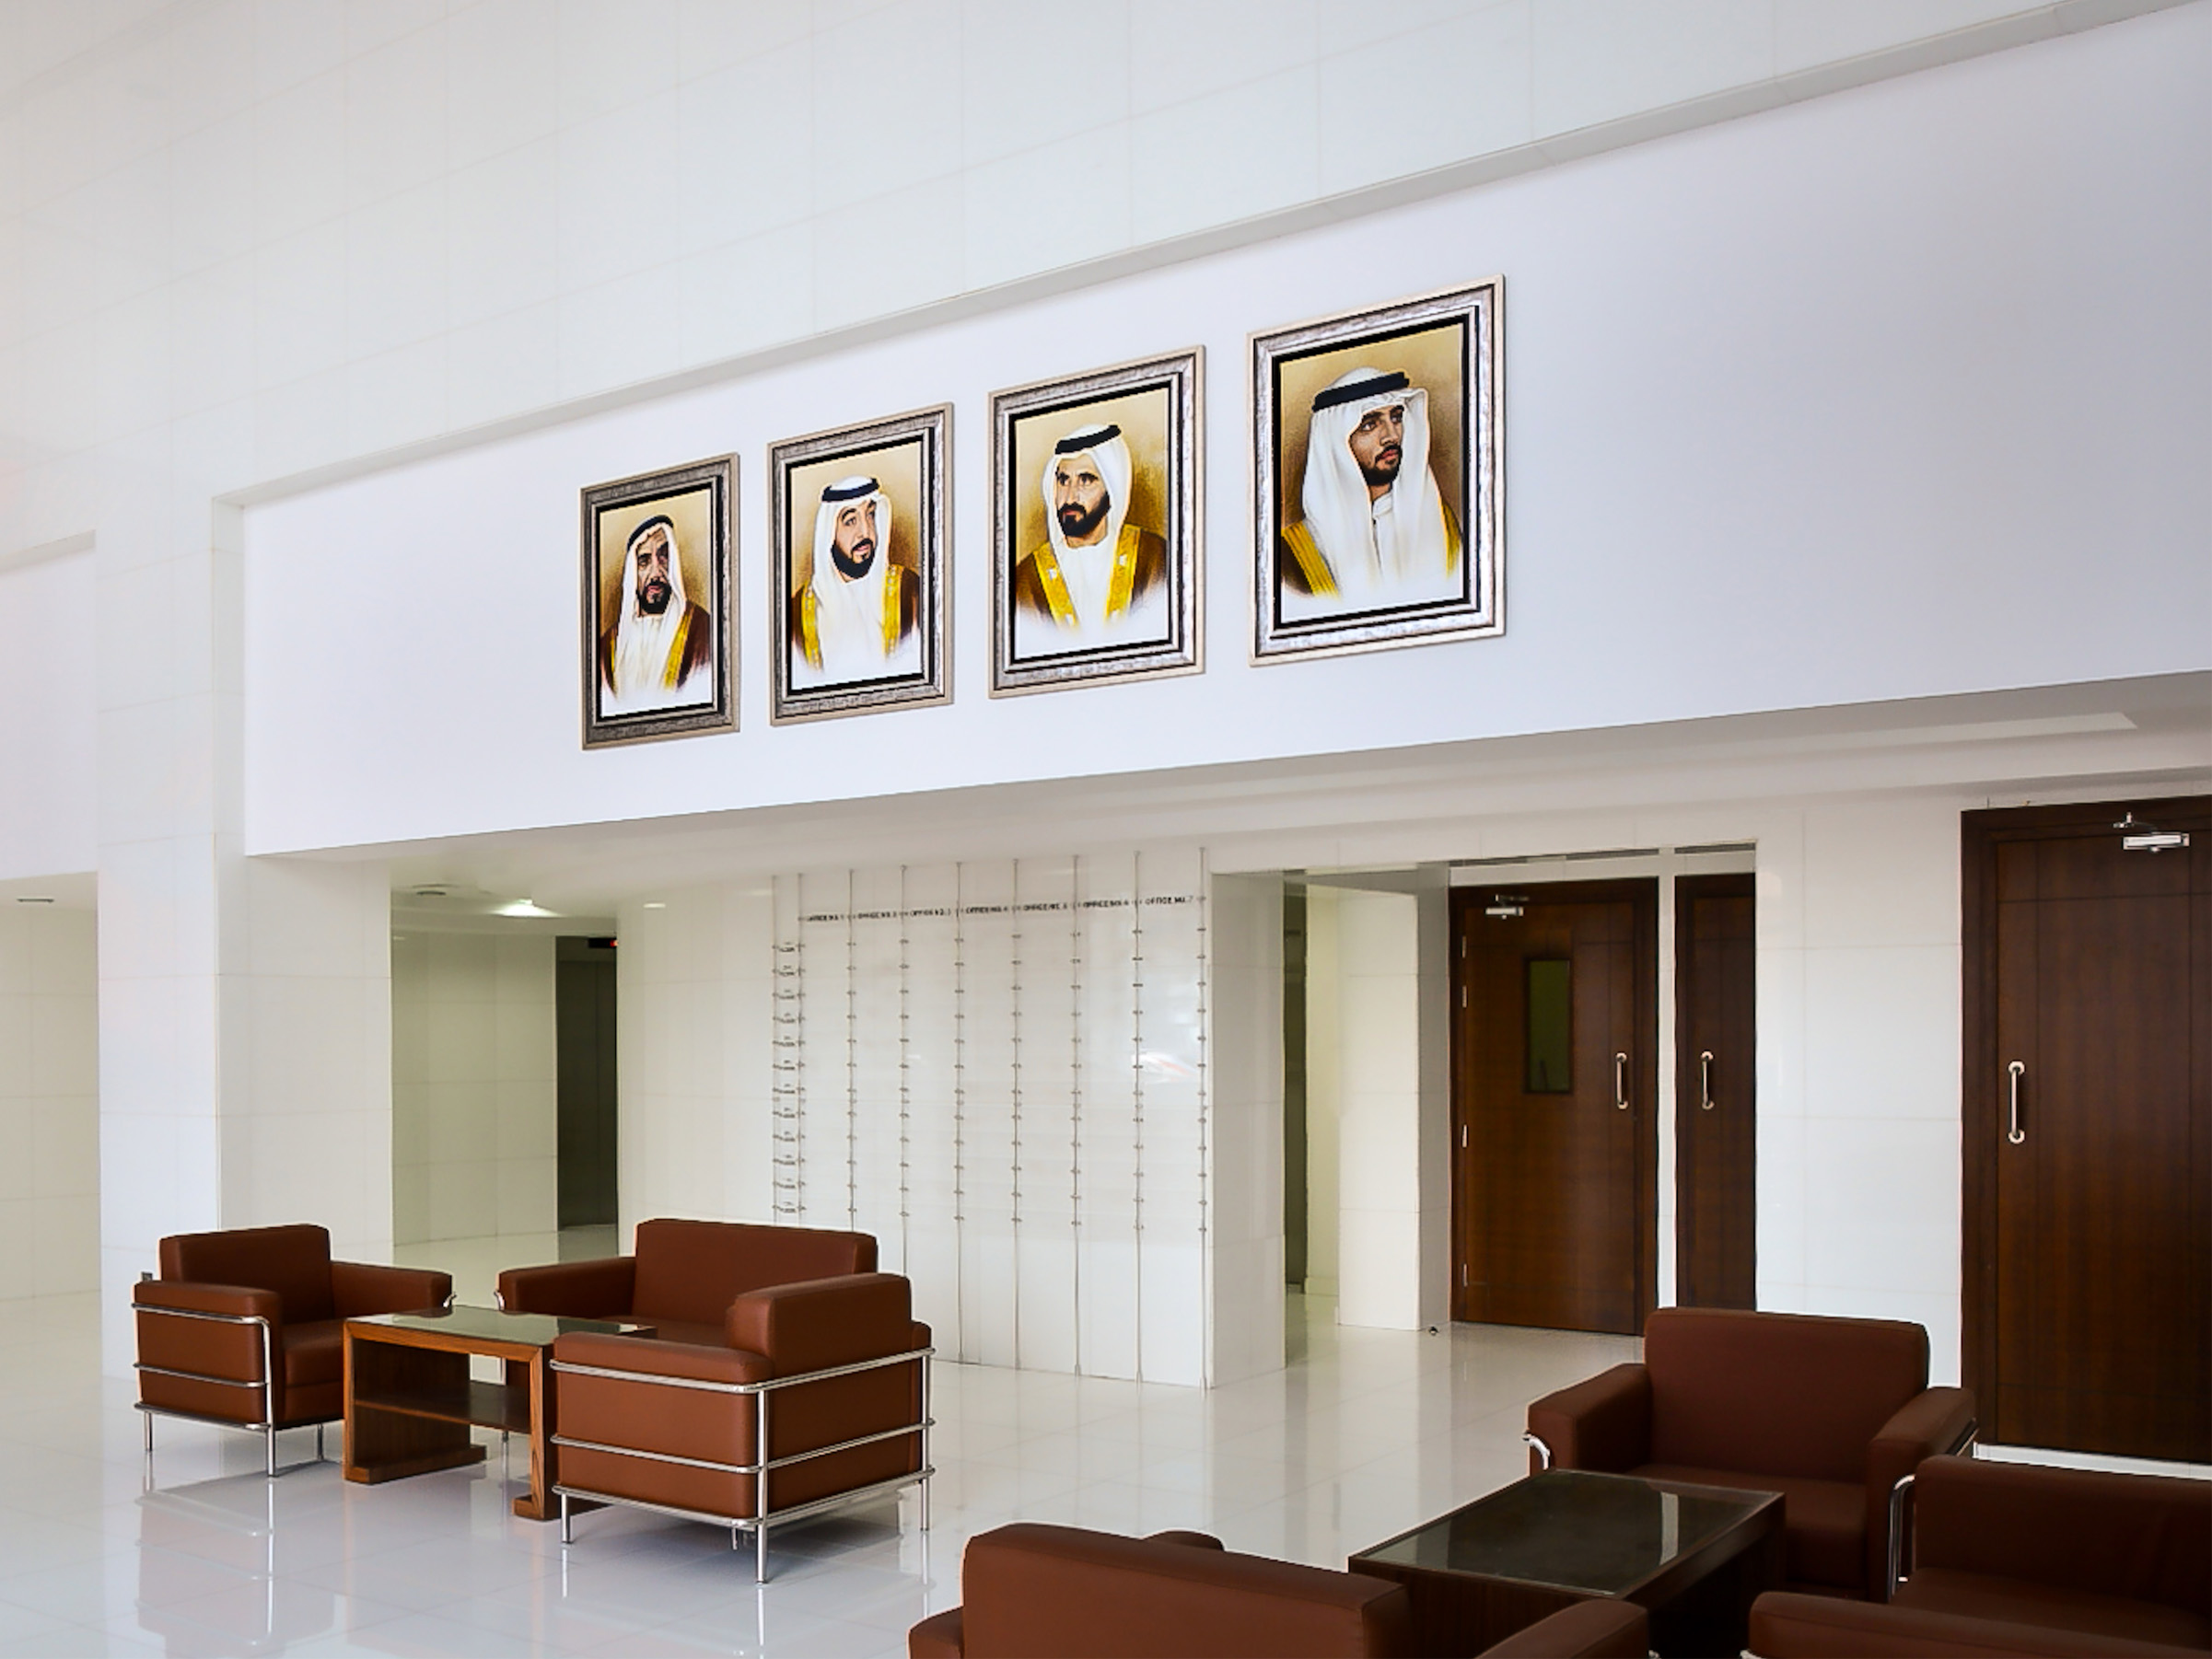 02-capsule-arts-projects-centurion-star-tower-sheikh-portraits.jpg